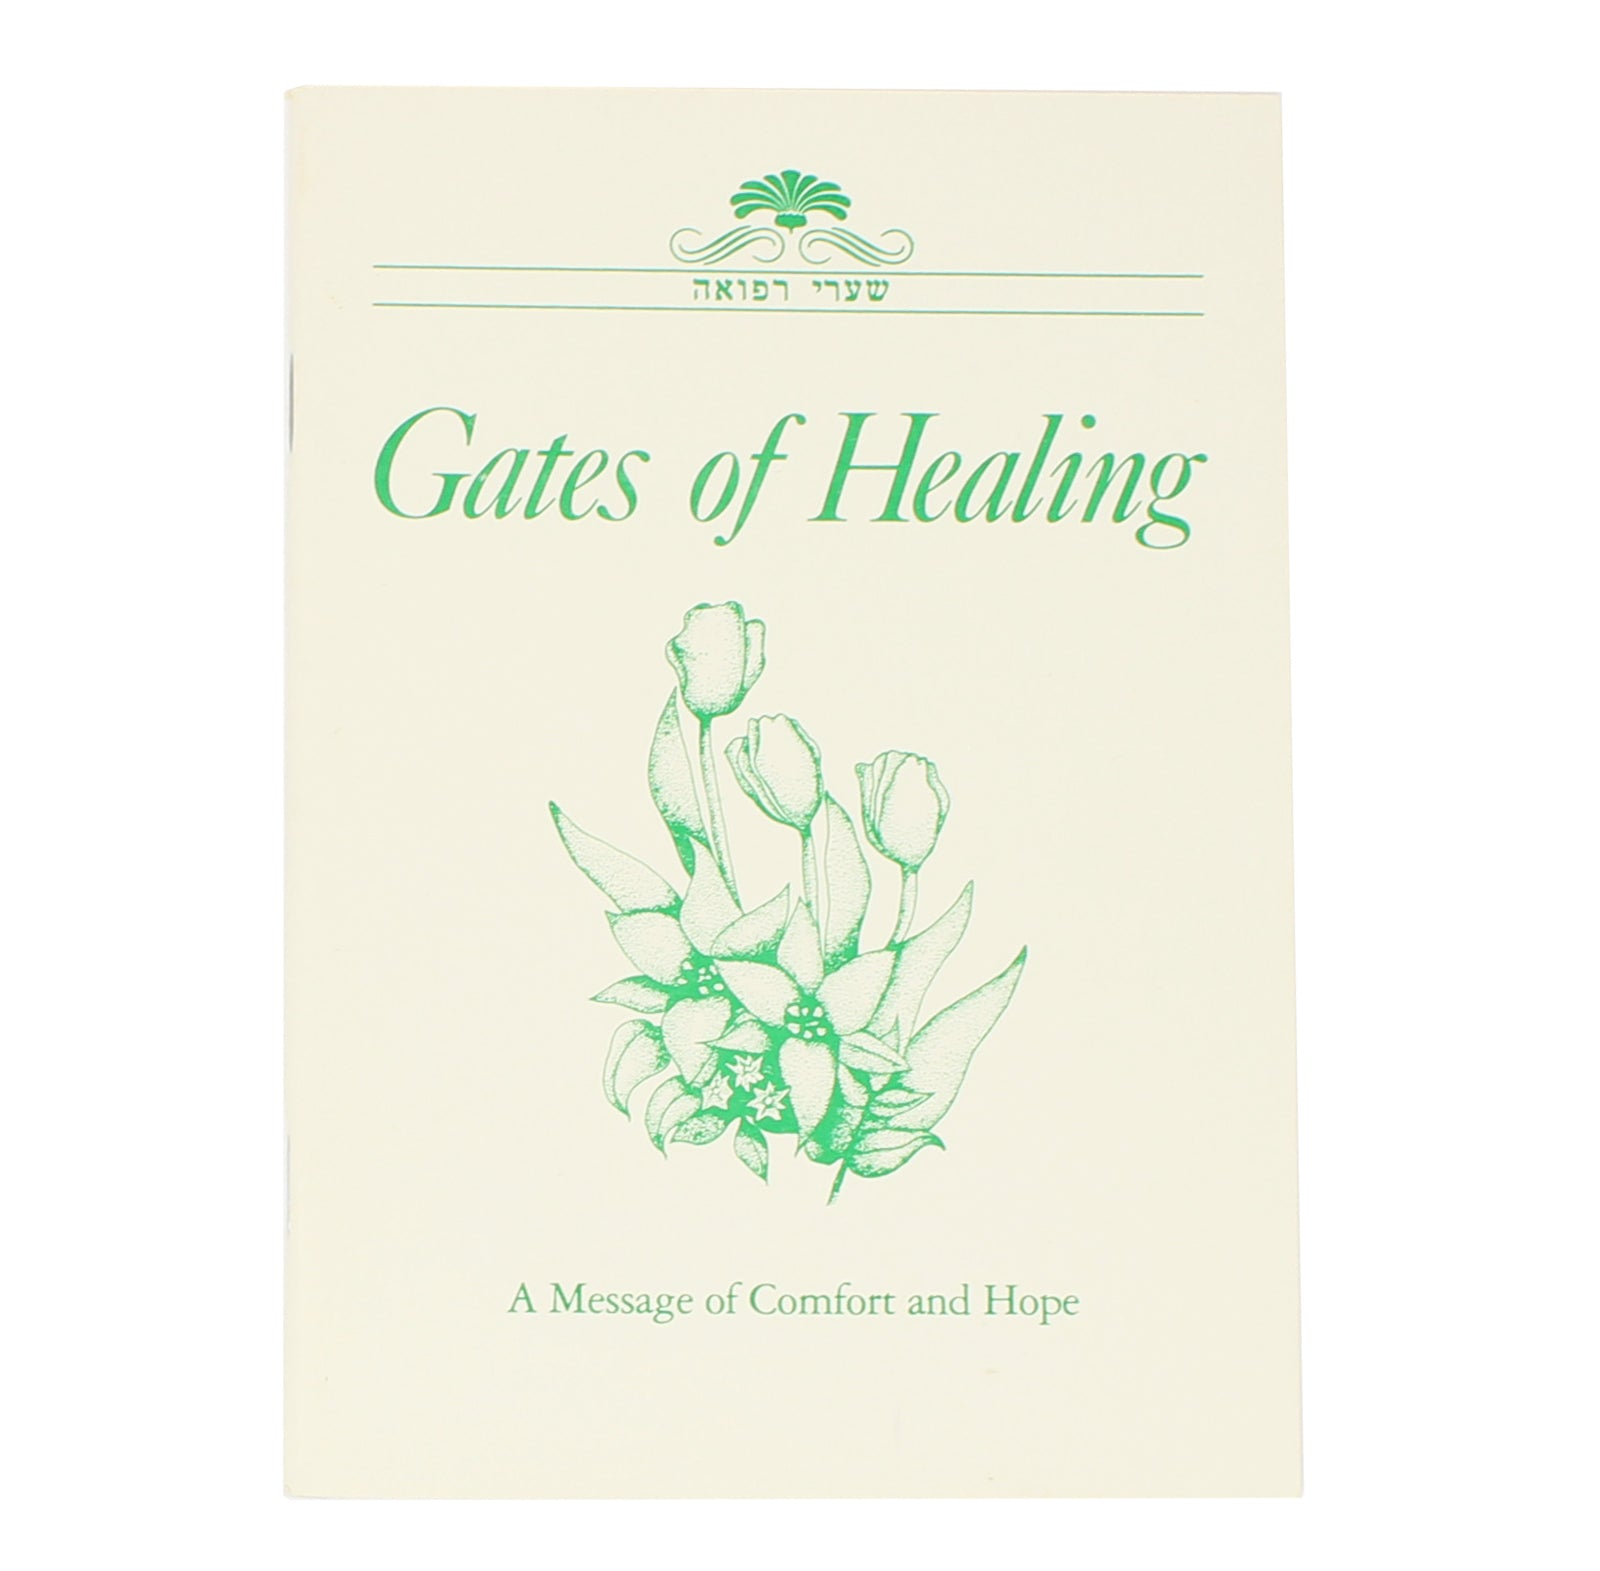 Gates of Healing: A Message of Comfort and Hope